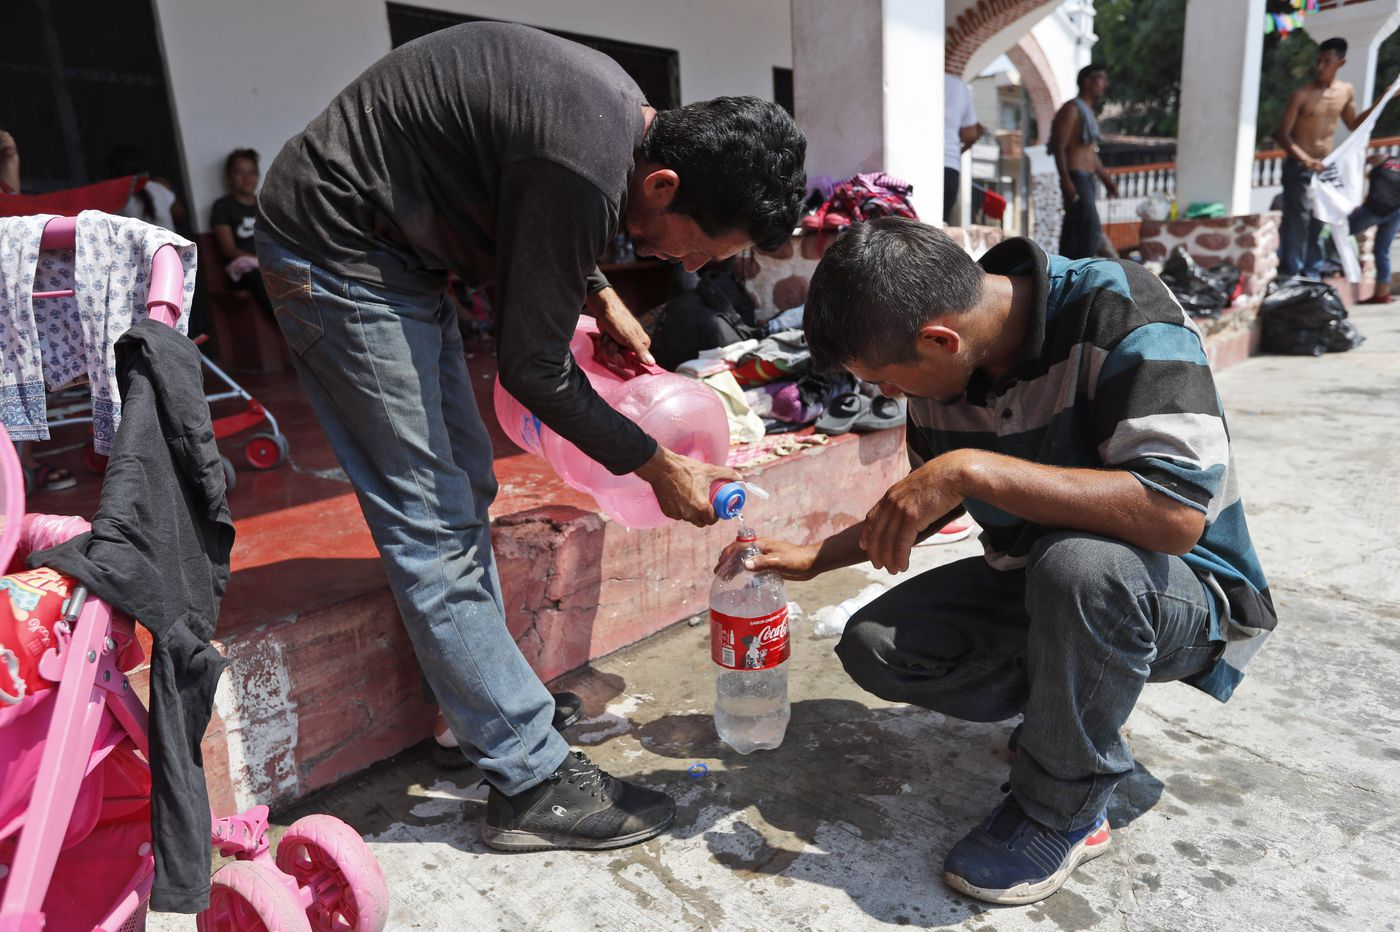 Migrants fearful after hundreds arrested in Mexico raid